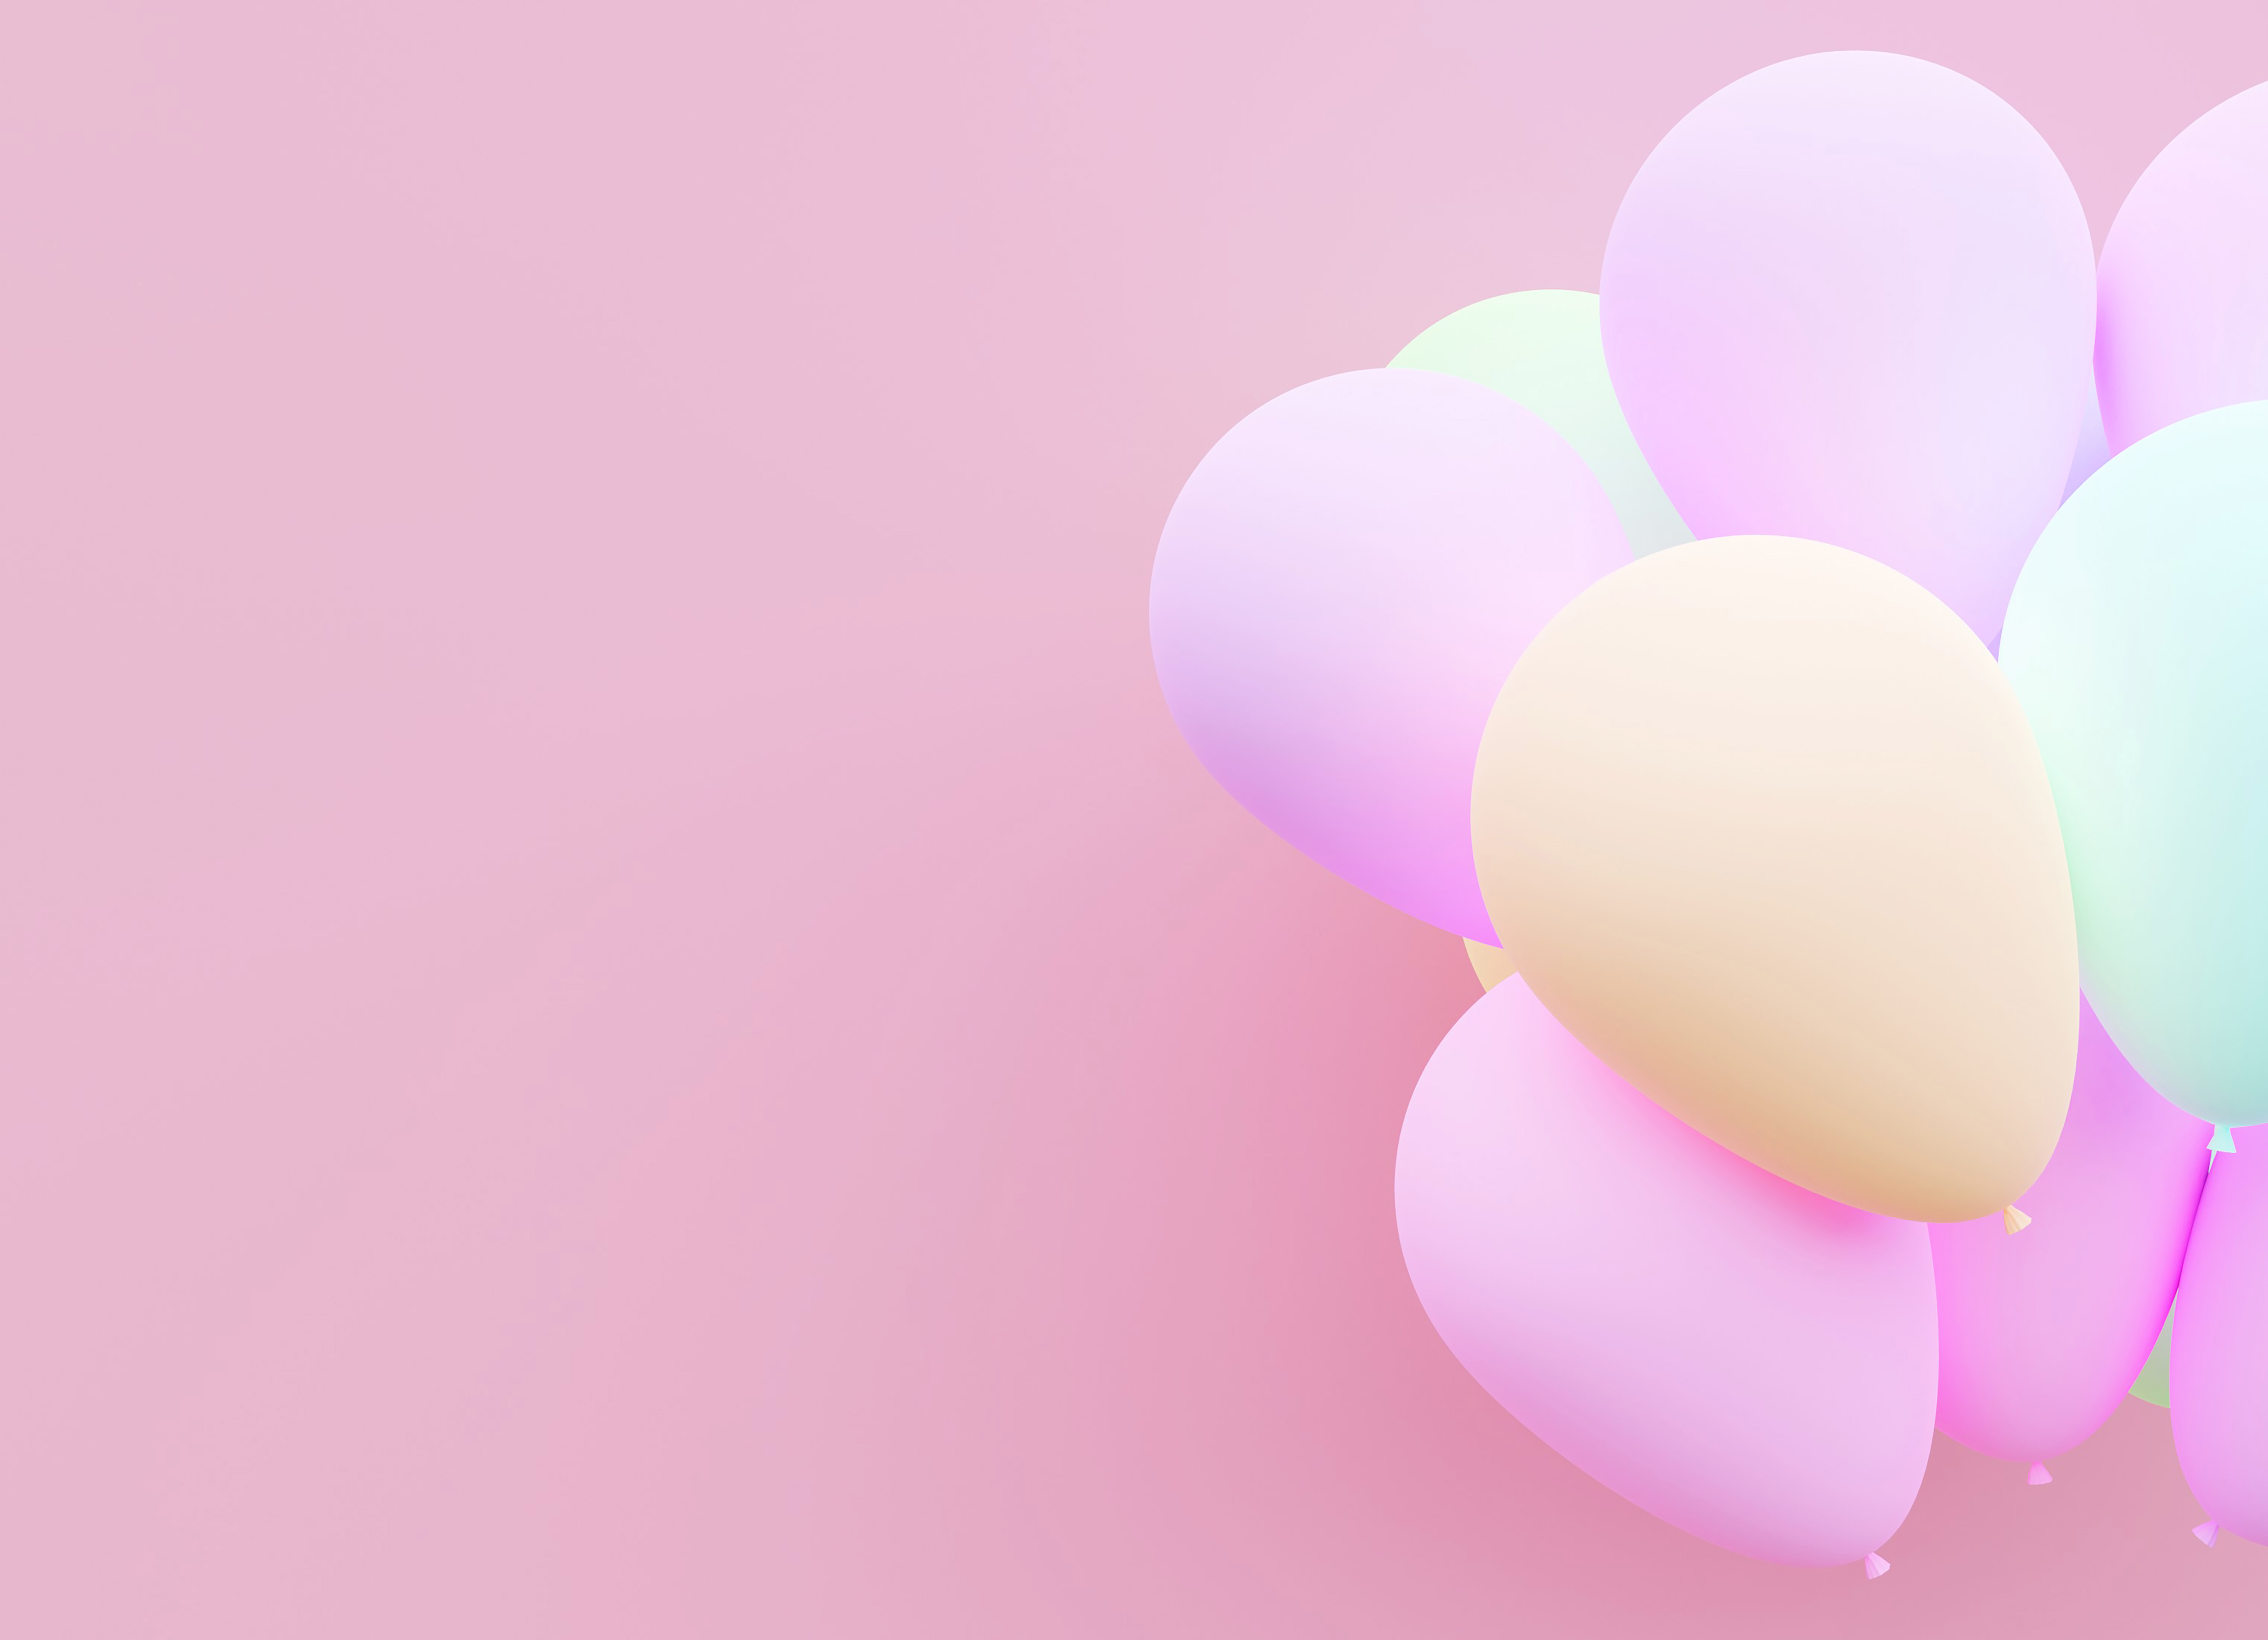 Pastel balloon background